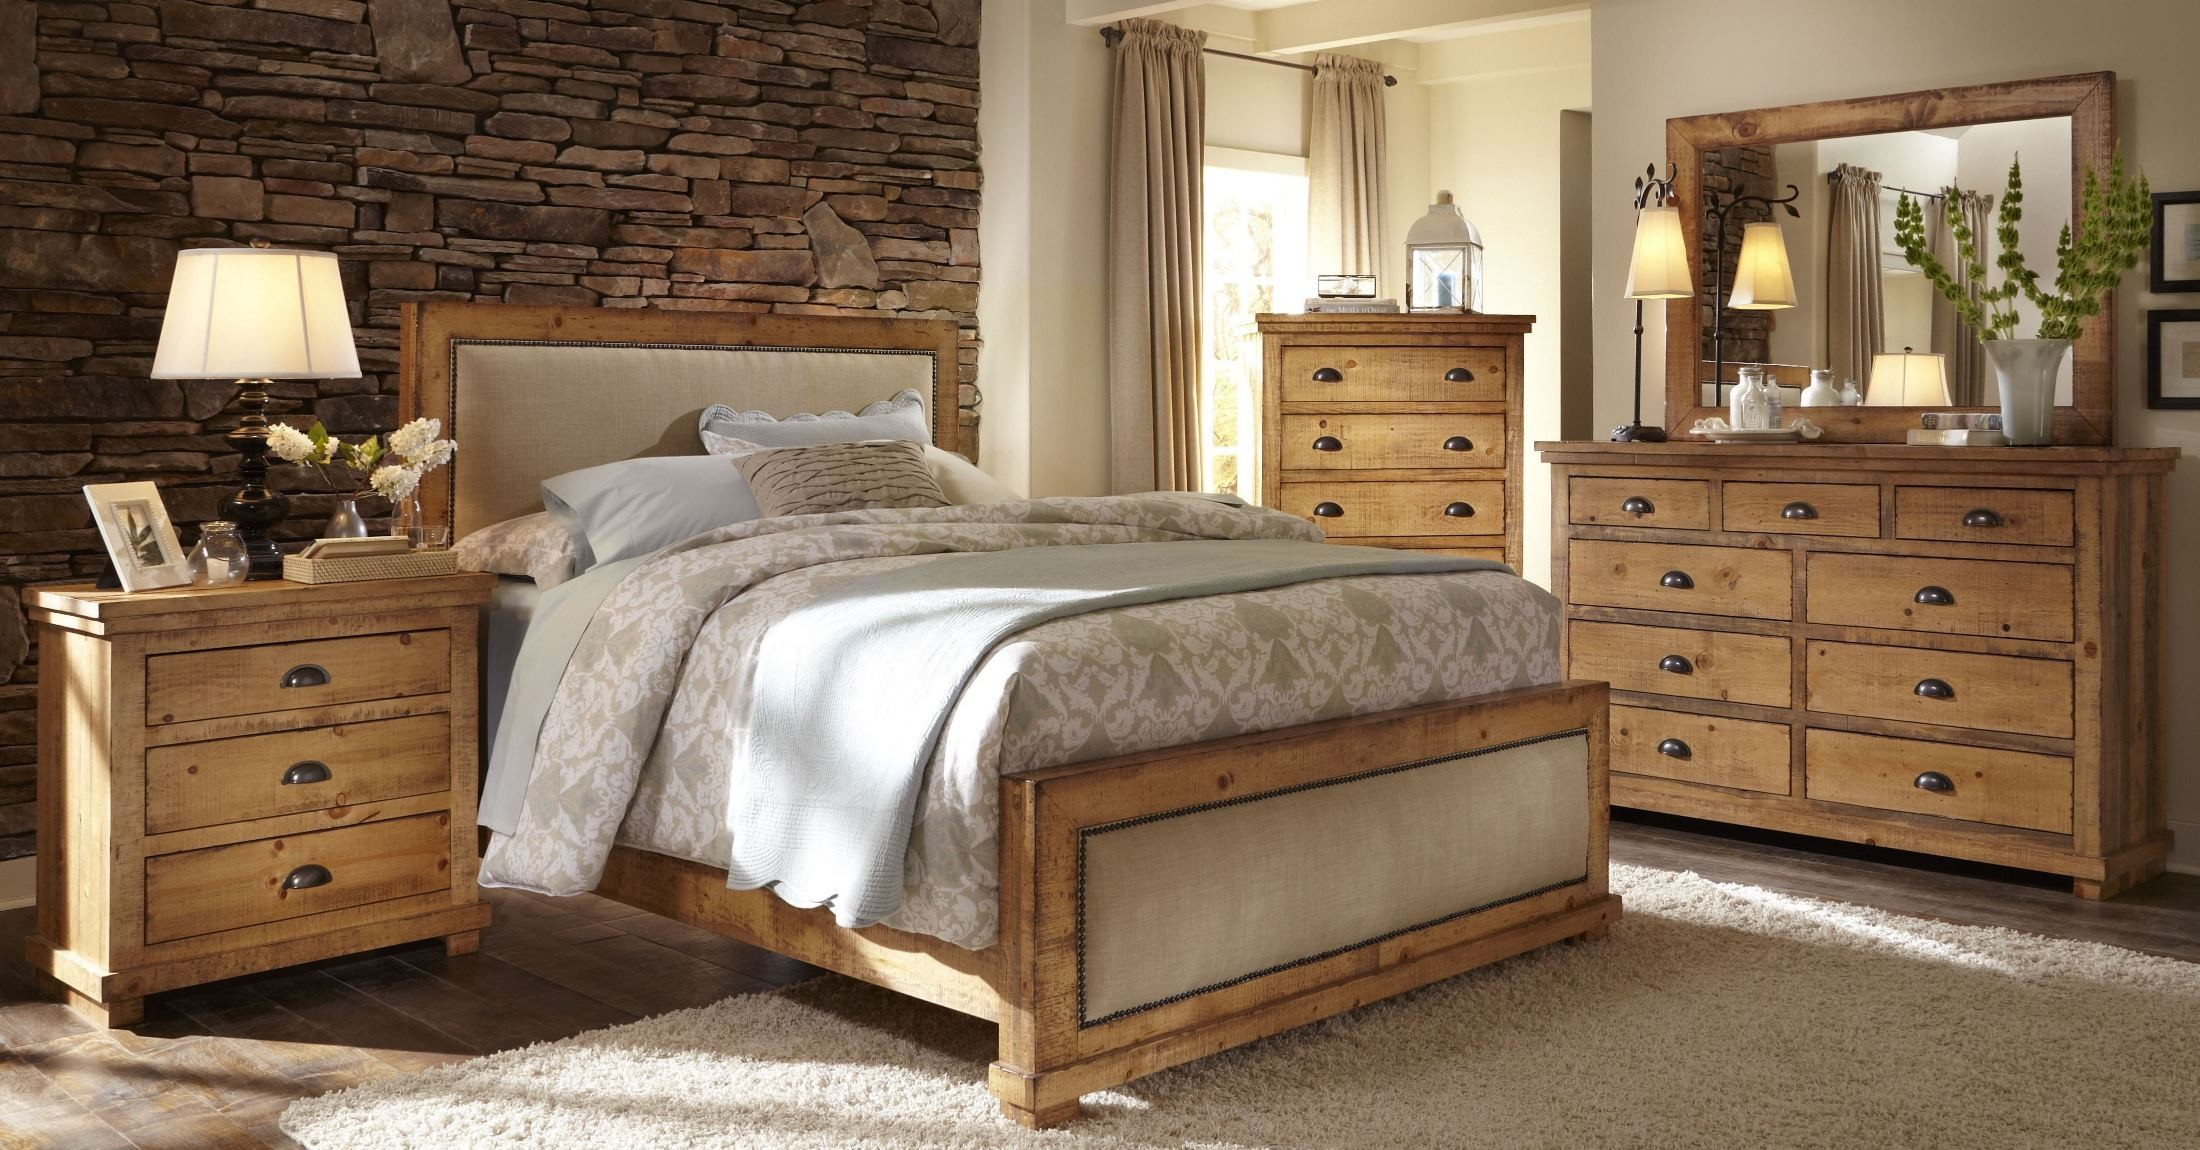 Willow Distressed Pine Upholstered Bedroom Set from